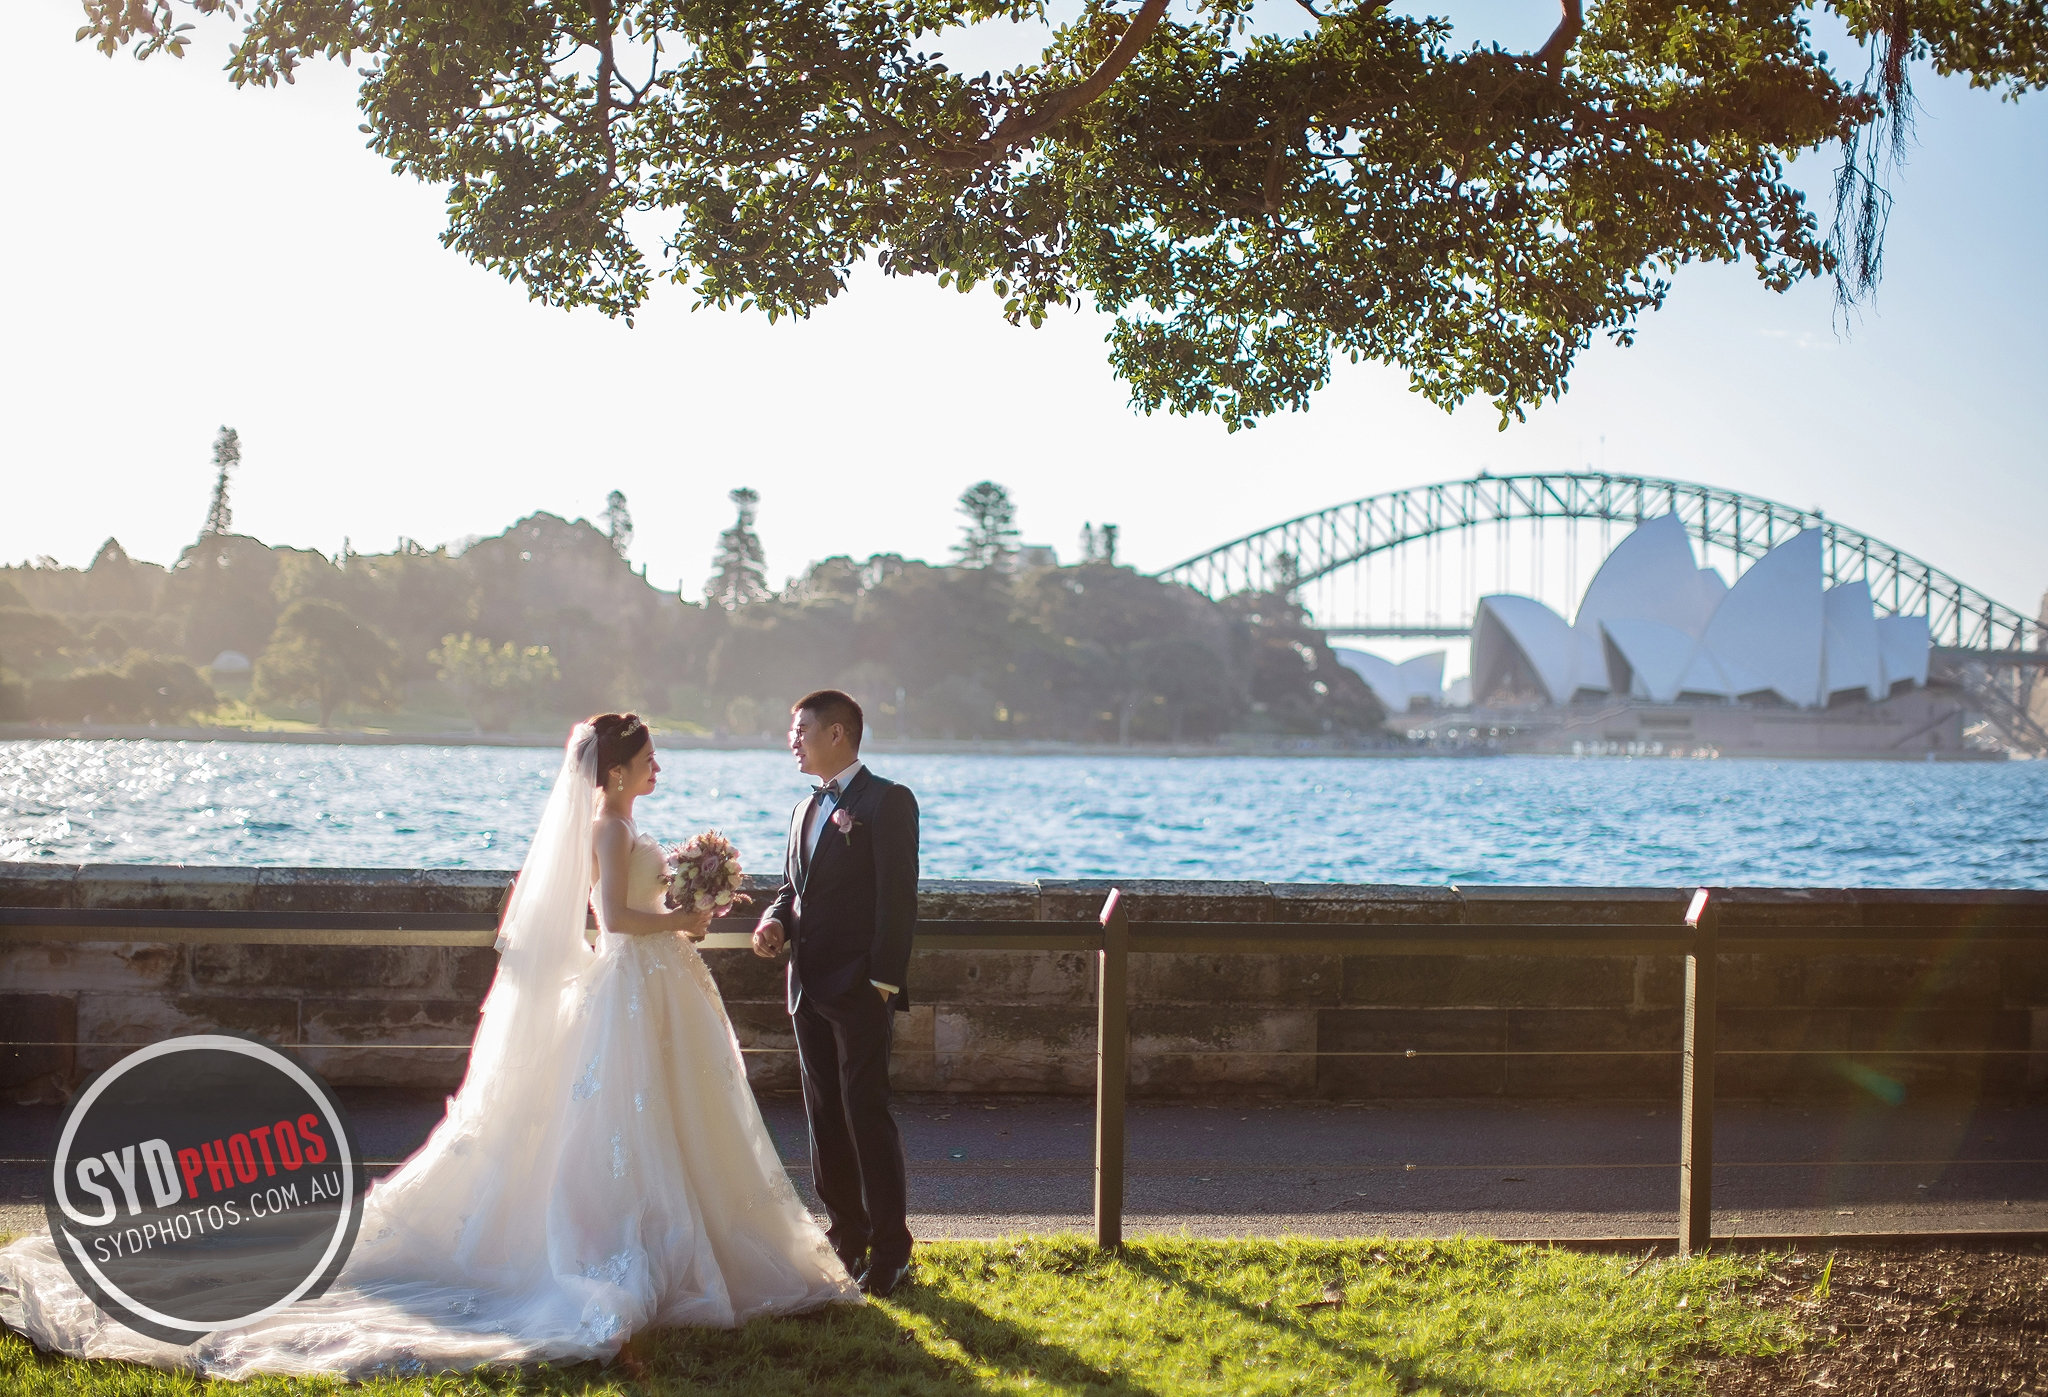 id-80174-20170903-654.jpg, By Photographer Sydphotos.wedding, Created on 11 Feb 2018, SYDPHOTOS Photography all rights reserved.